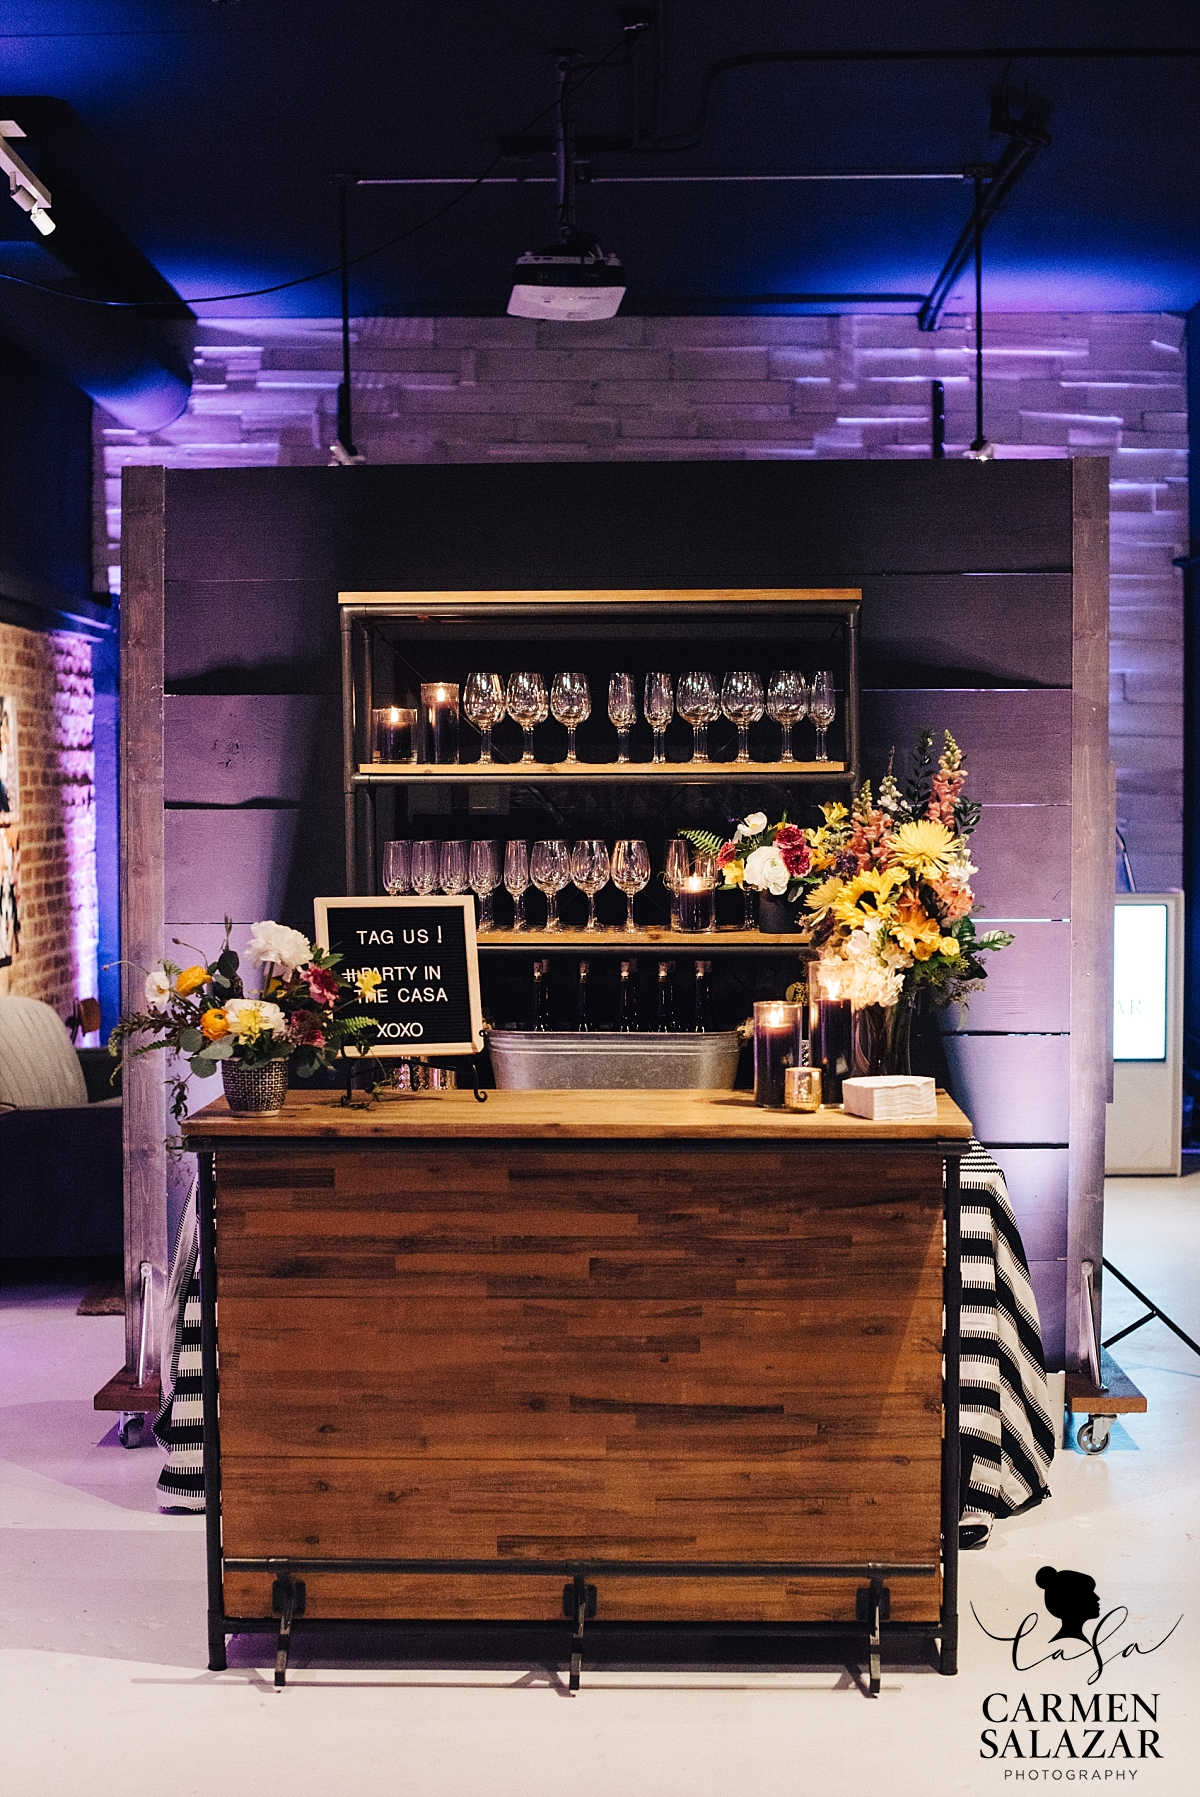 Party bar at photo studio grand opening - Carmen Salazar Photography